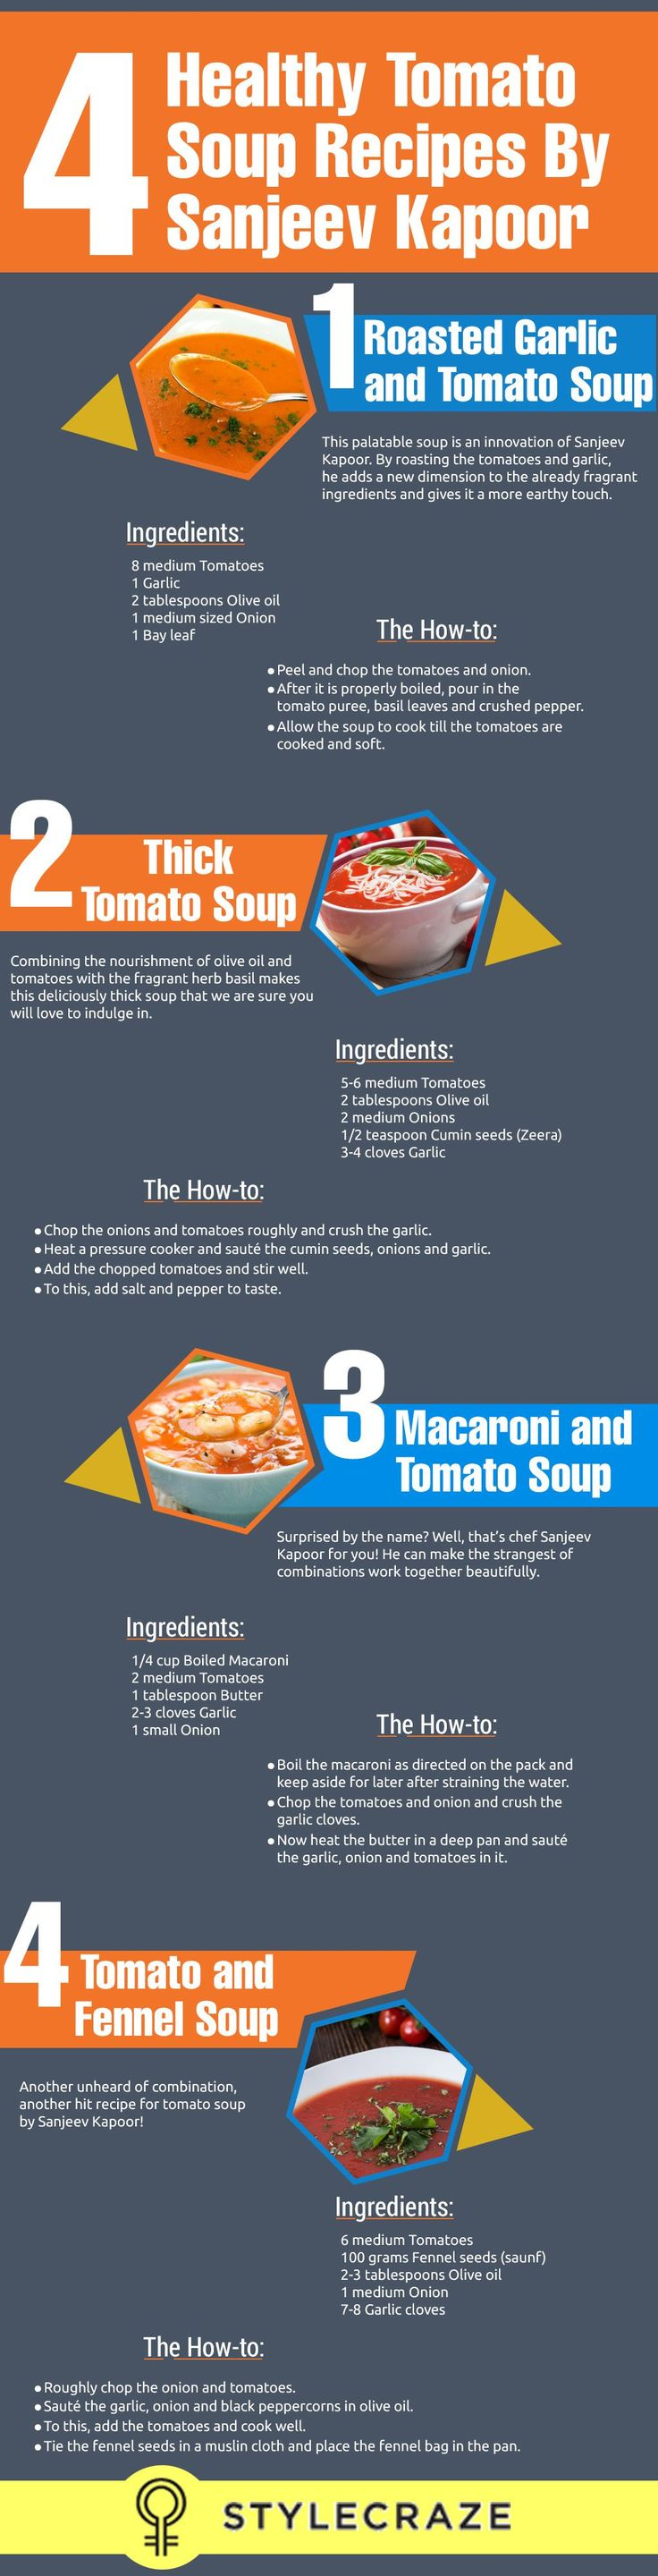 9 best sanjeev kapoor images on pinterest indian food recipes 10 healthy and yummy tomato soup recipes by sanjeev kapoor forumfinder Images